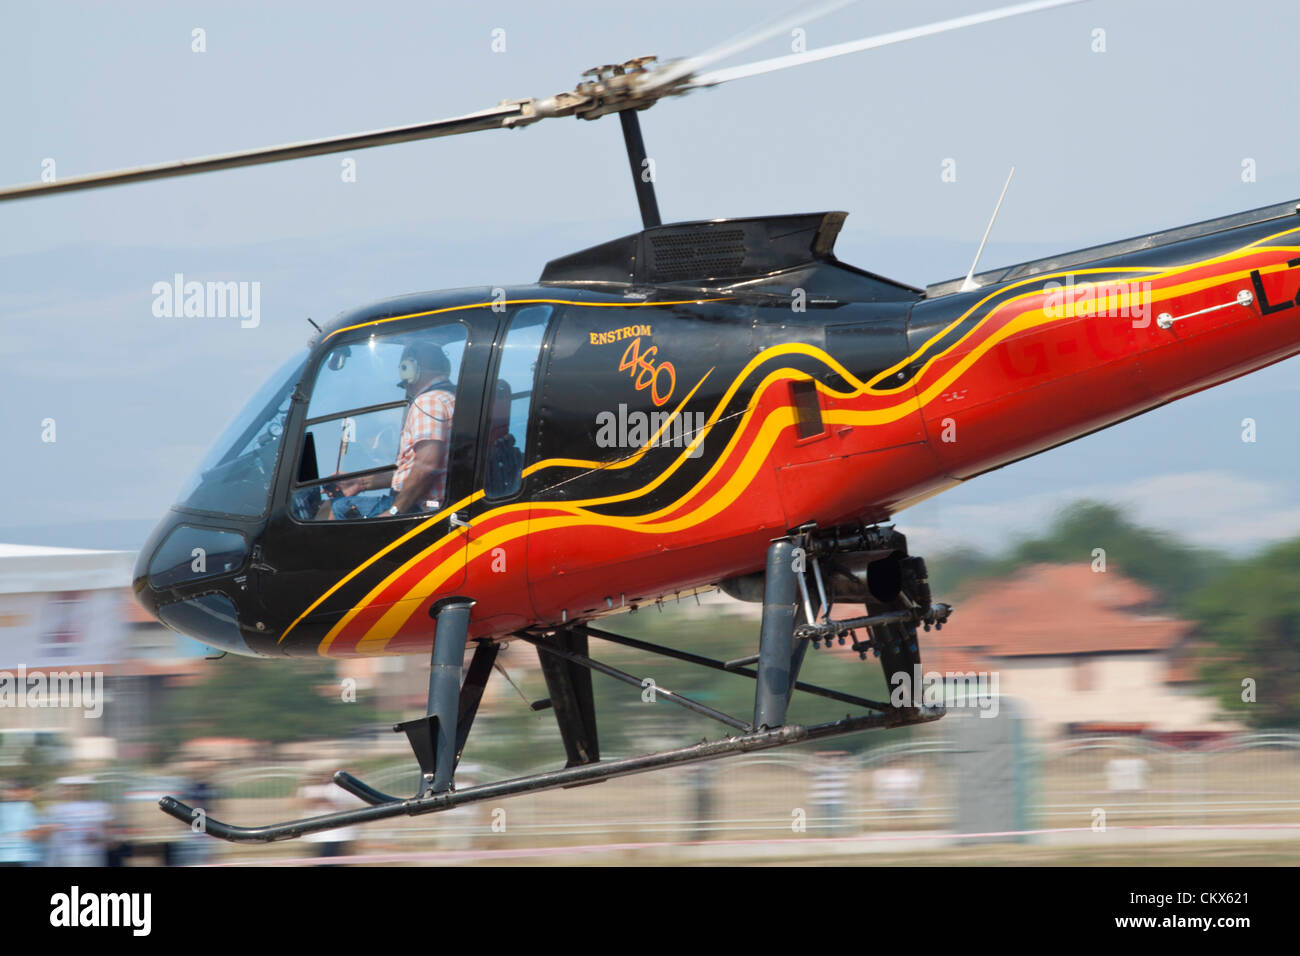 Lesnovo, Bulgaria; 24th Aug 2012. Enstrom 480 light helicopter during a very low fly-by. This aircraft is equipped - Stock Image